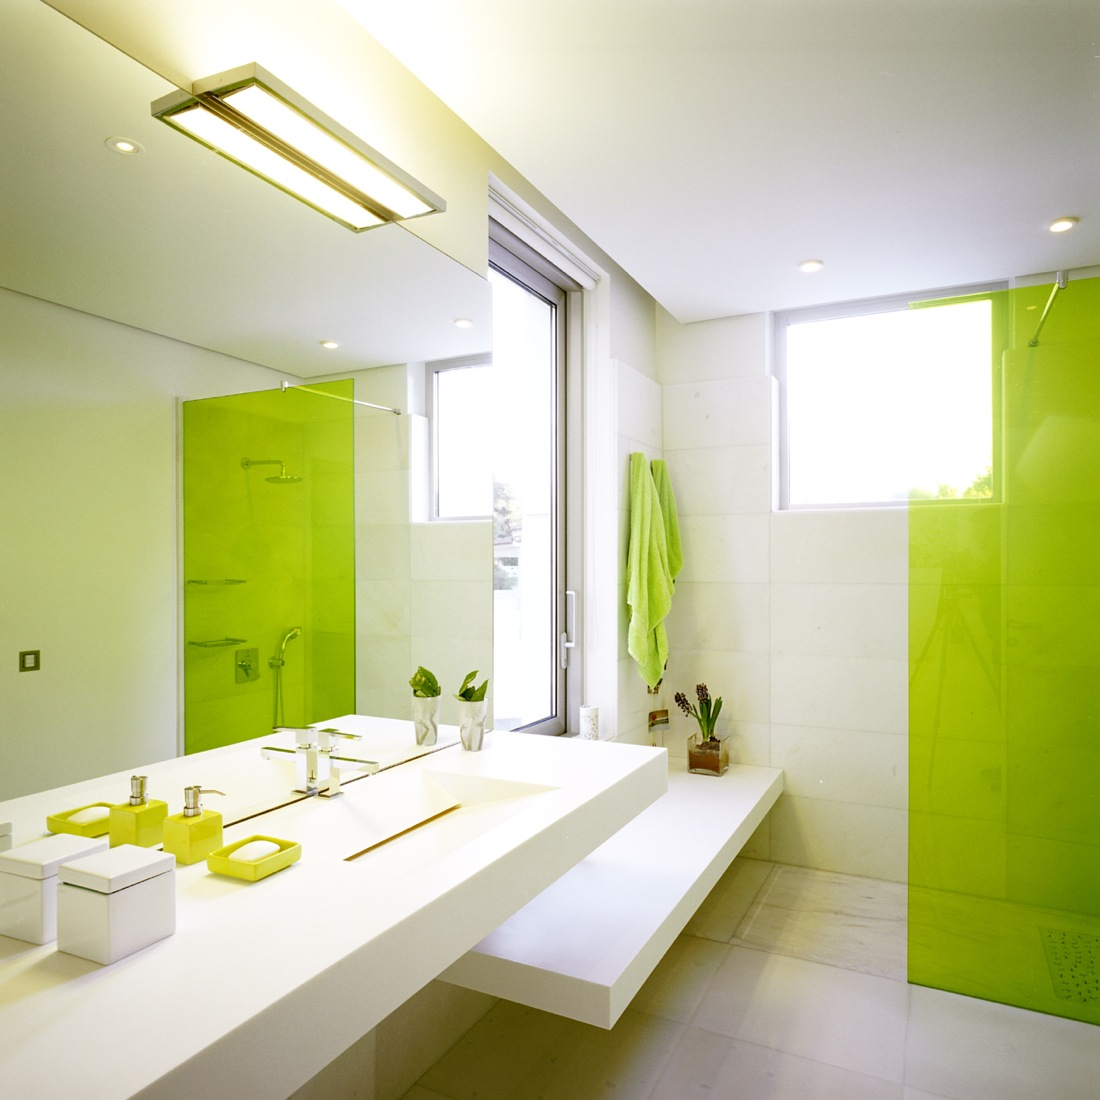 Minimalist bathroom designs home designs project for Bathroom styles and designs